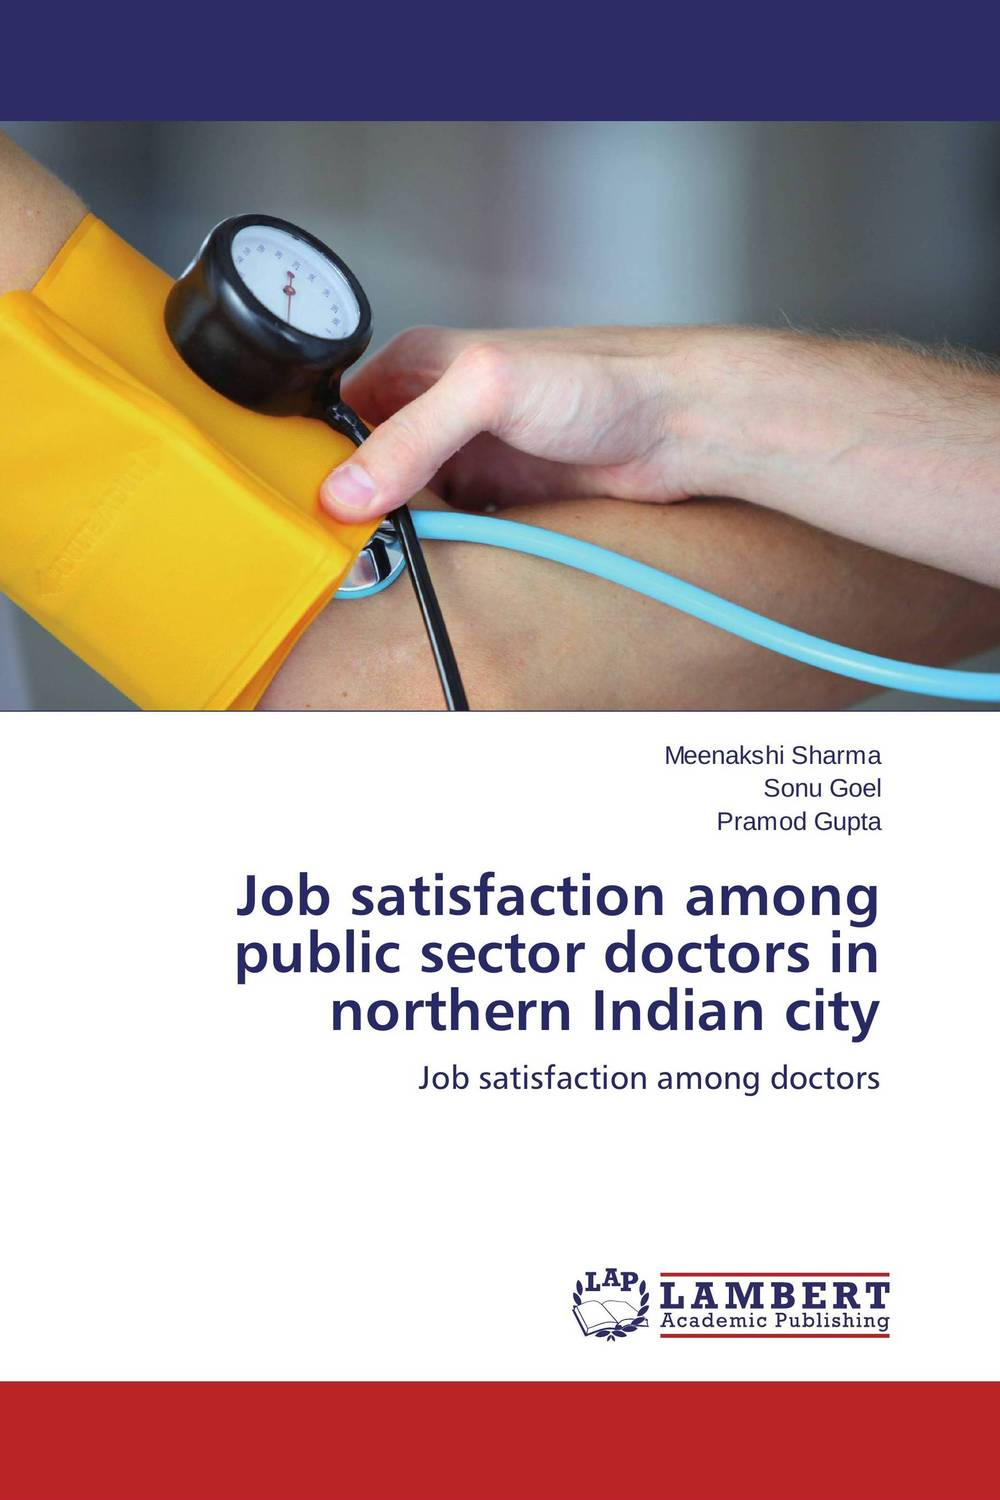 Job satisfaction among public sector doctors in northern Indian city burnout ways of coping and job satisfaction among doctors